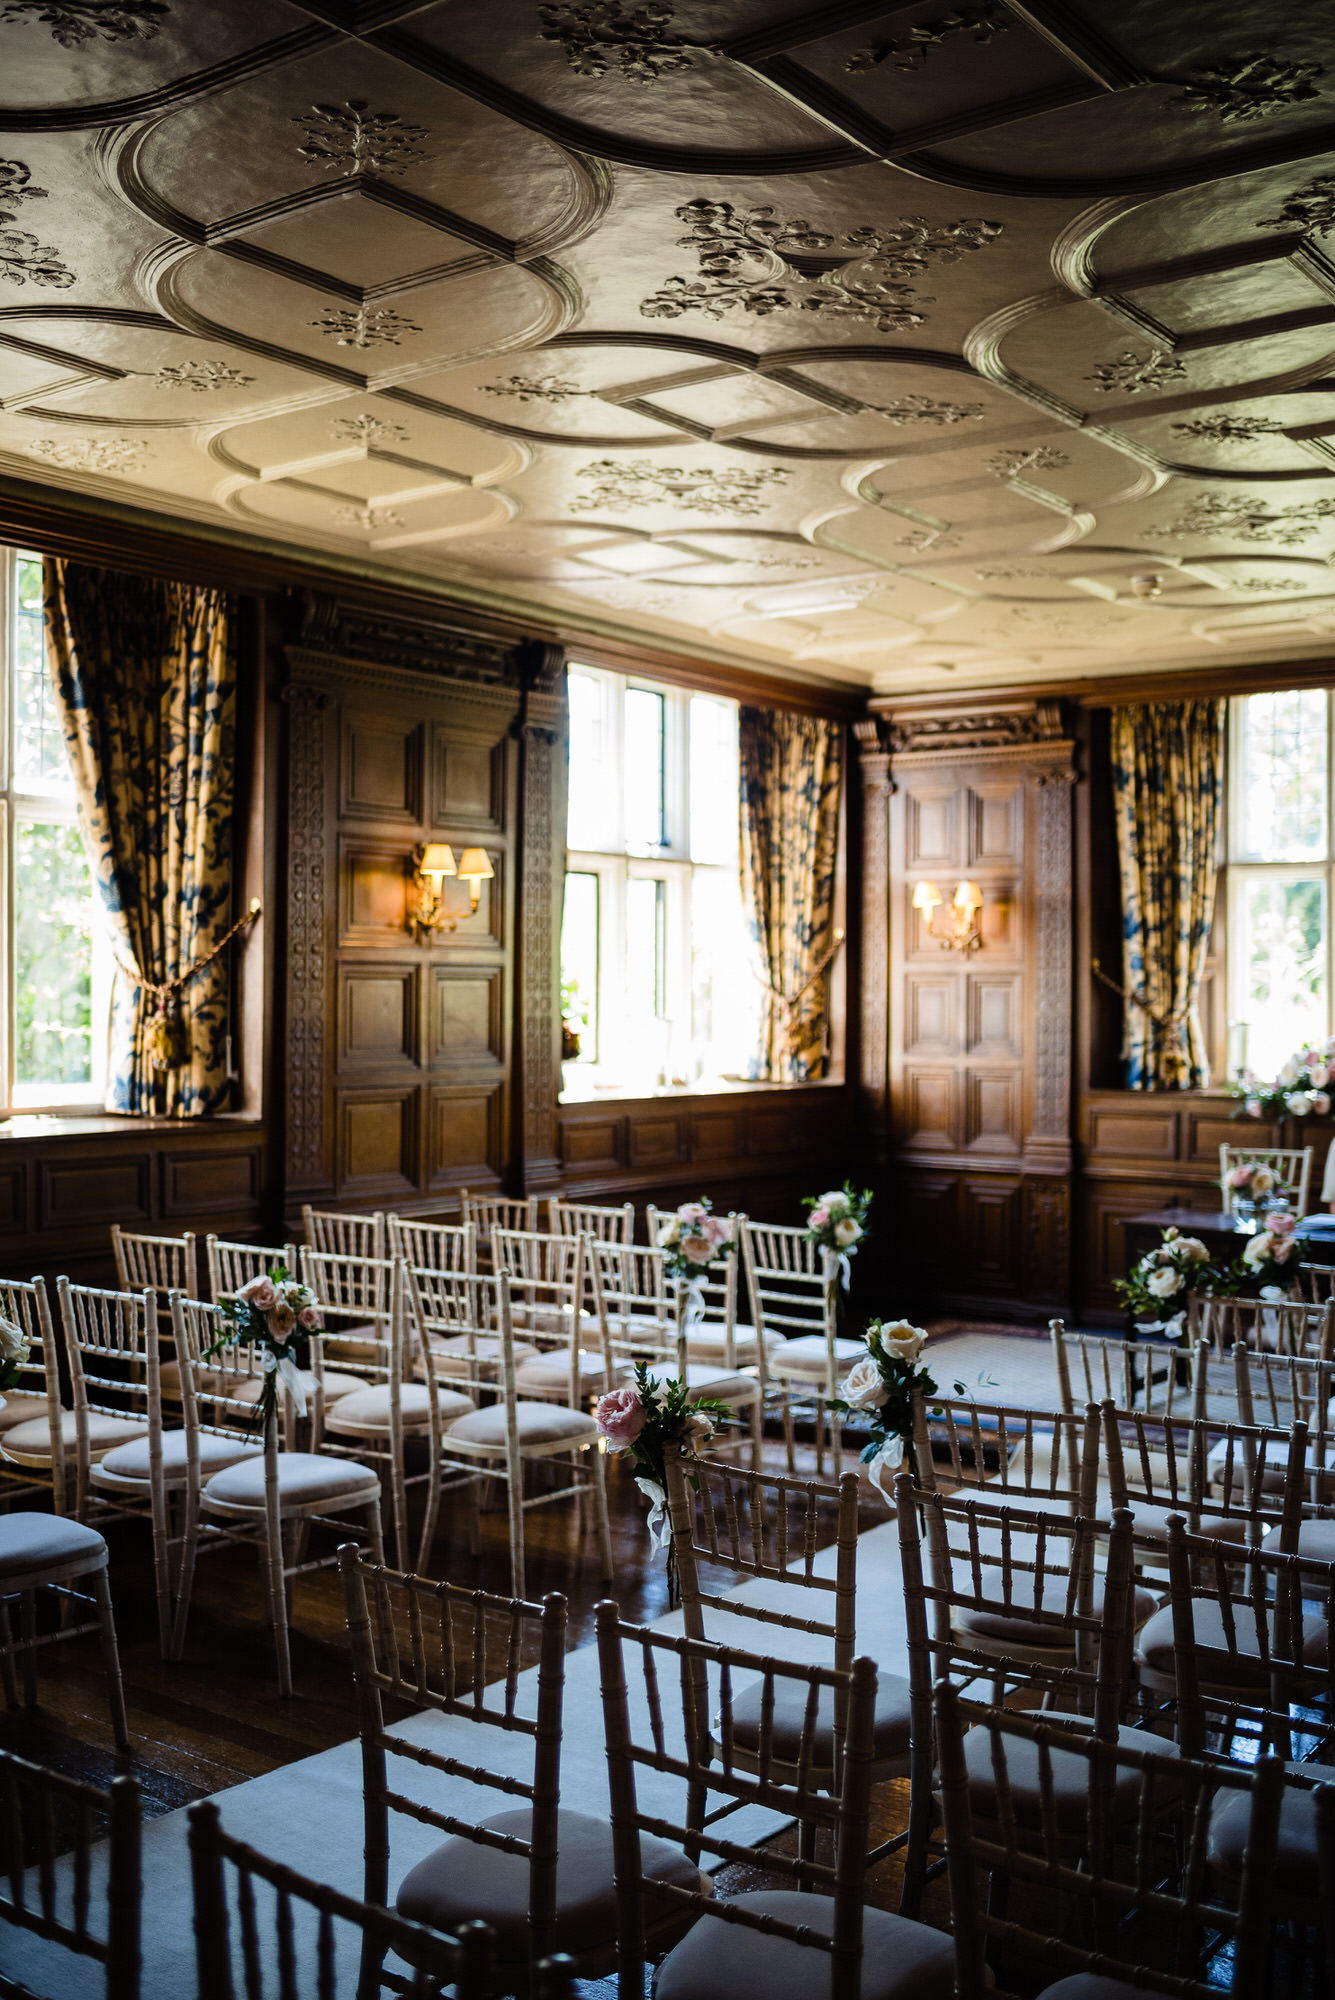 Gravetye Manor wedding ceremony room